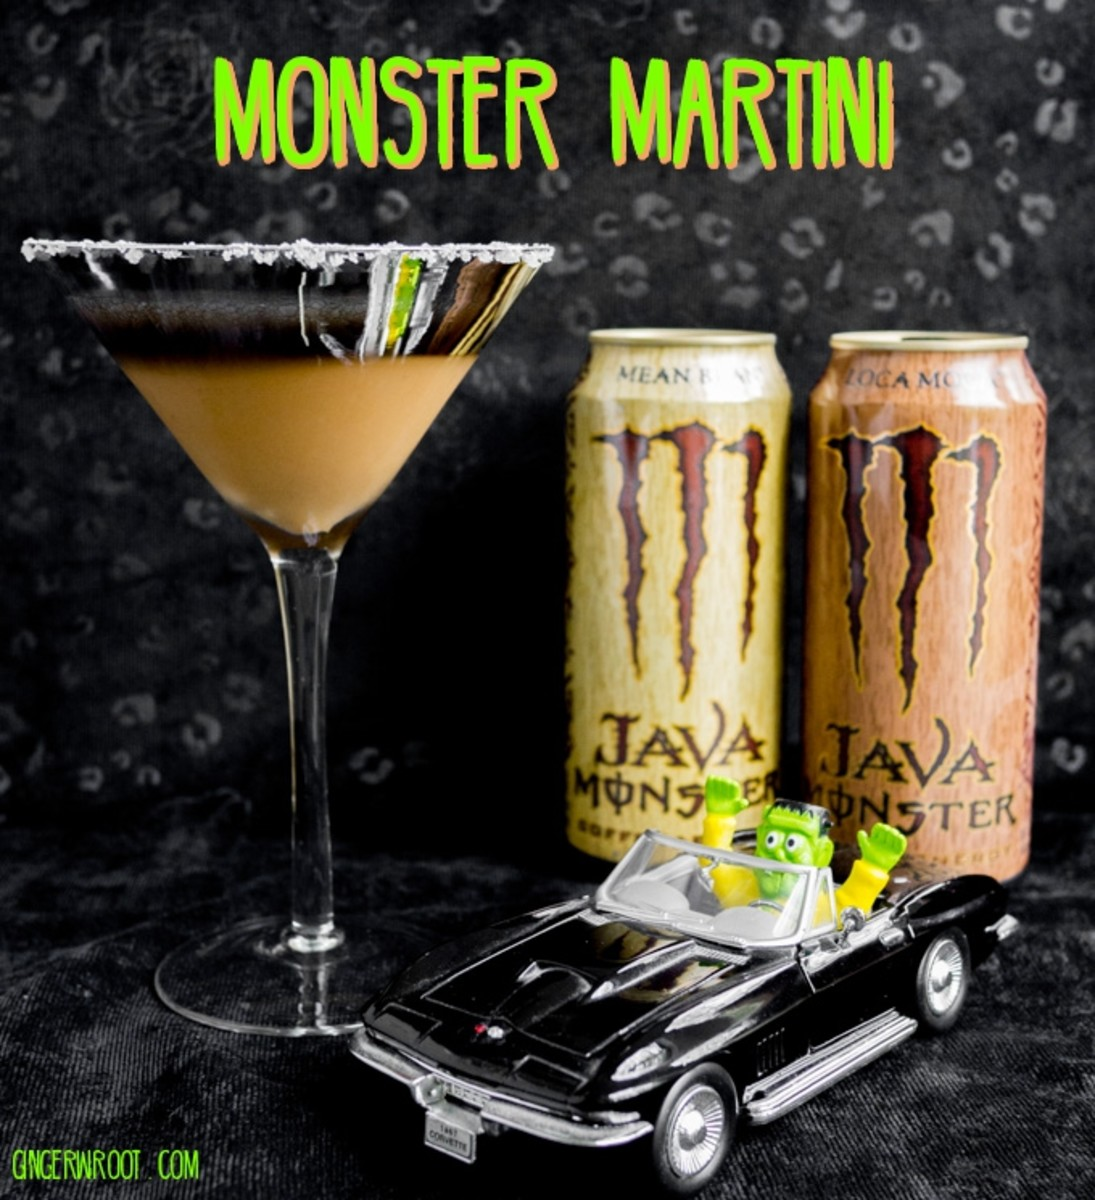 A Monster Martini